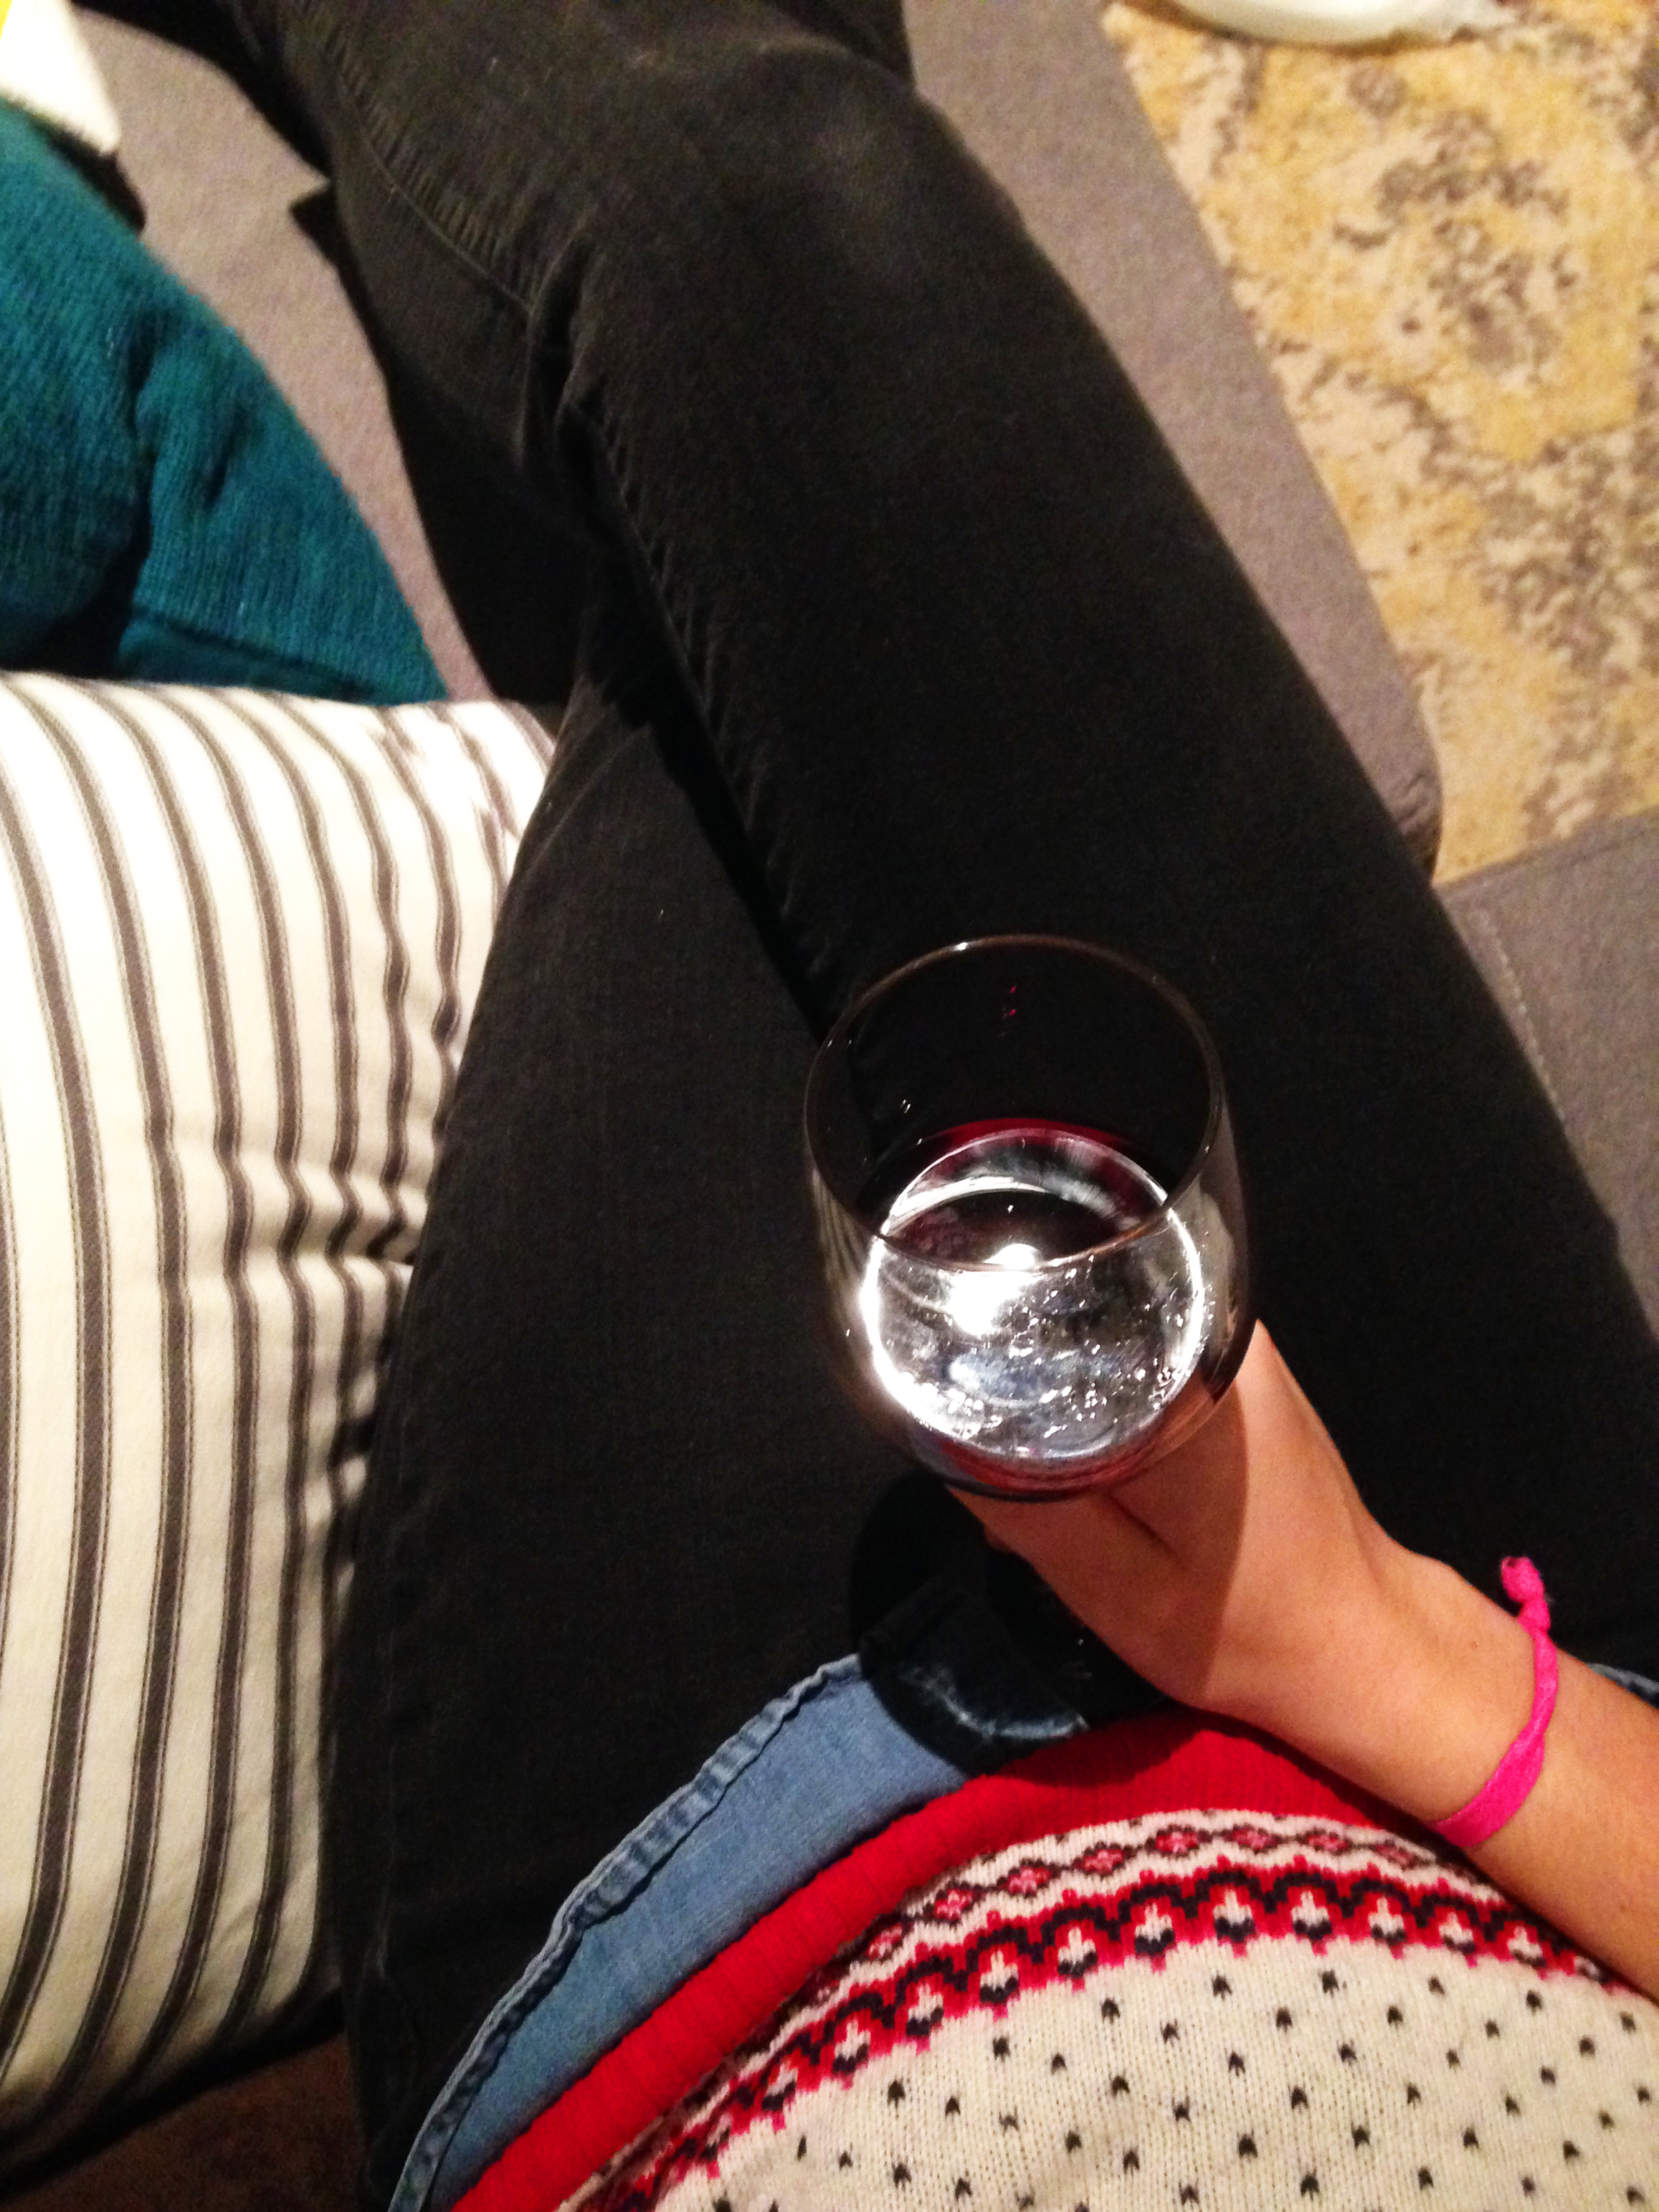 TV, wine and 3 patterns